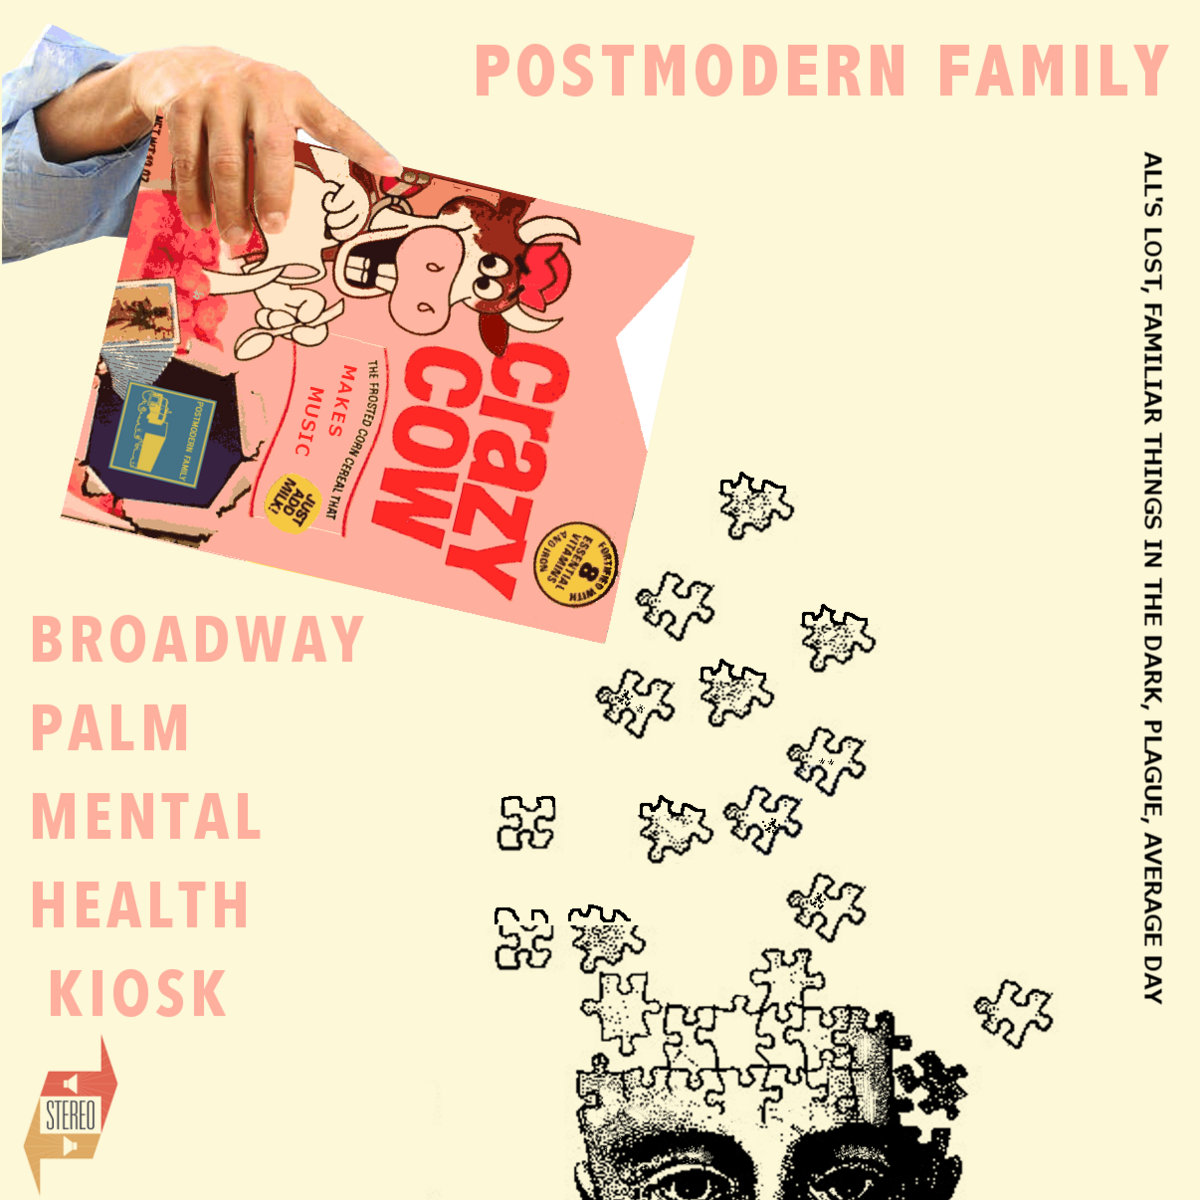 what is meant by the term postmodern family